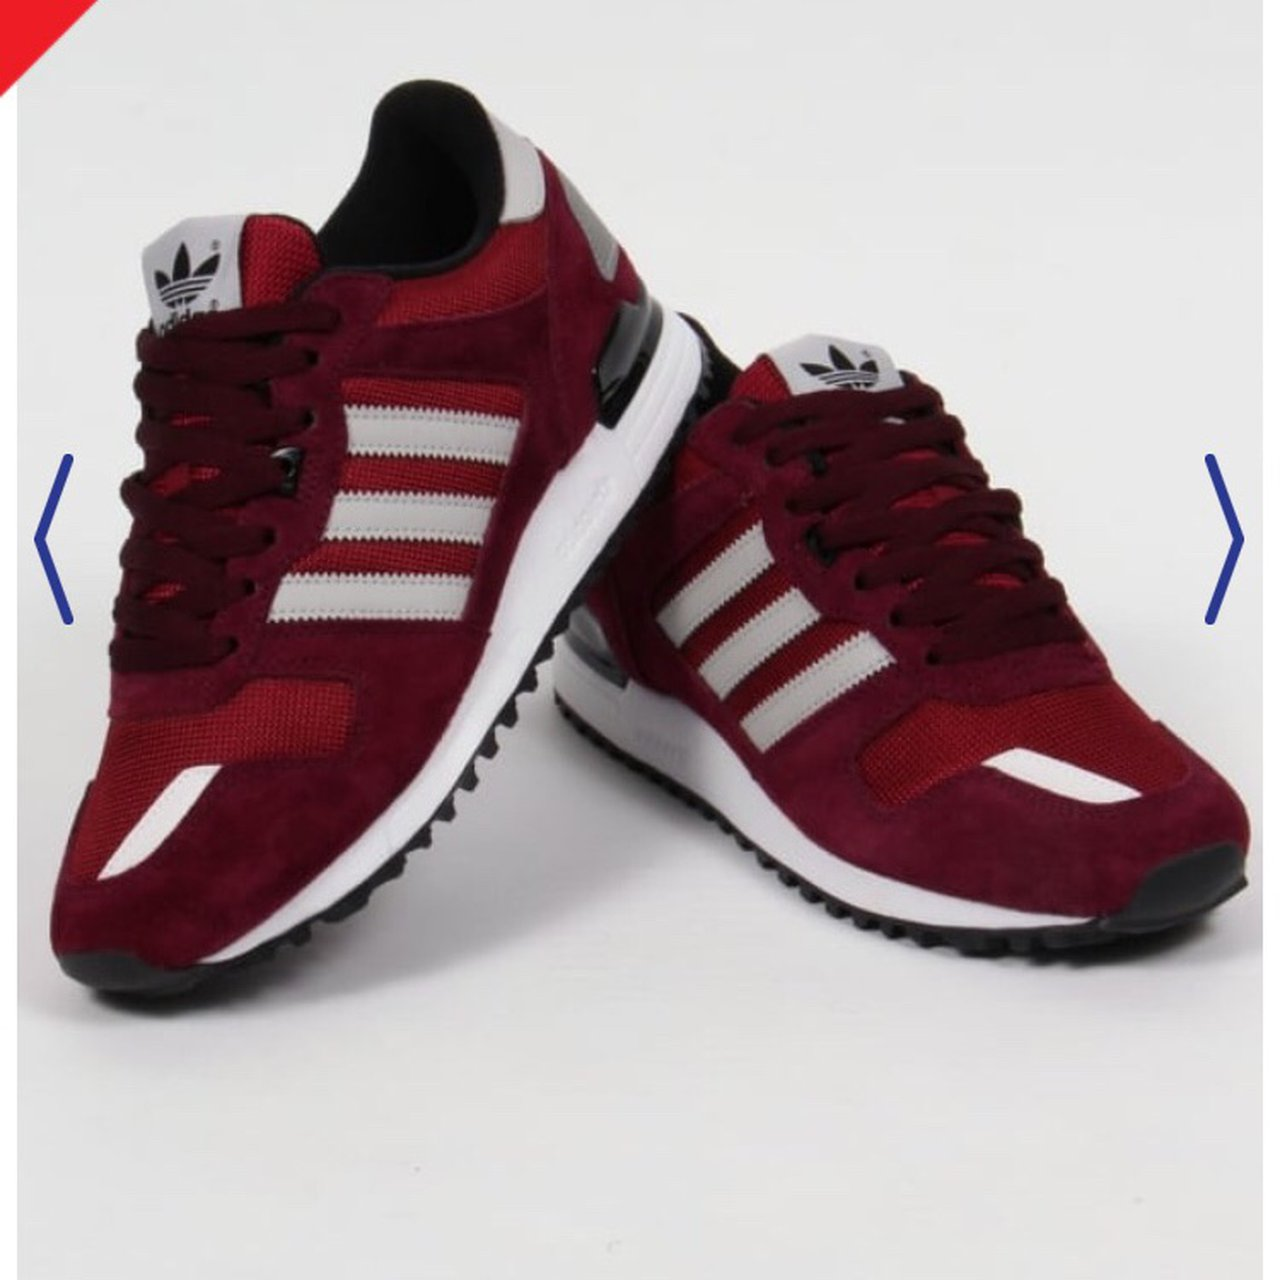 70bfe1e07ffbf ADIDAS ZX 700 OLD SCHOOL TRAINERS BURGUNDY Perfect condition - Depop